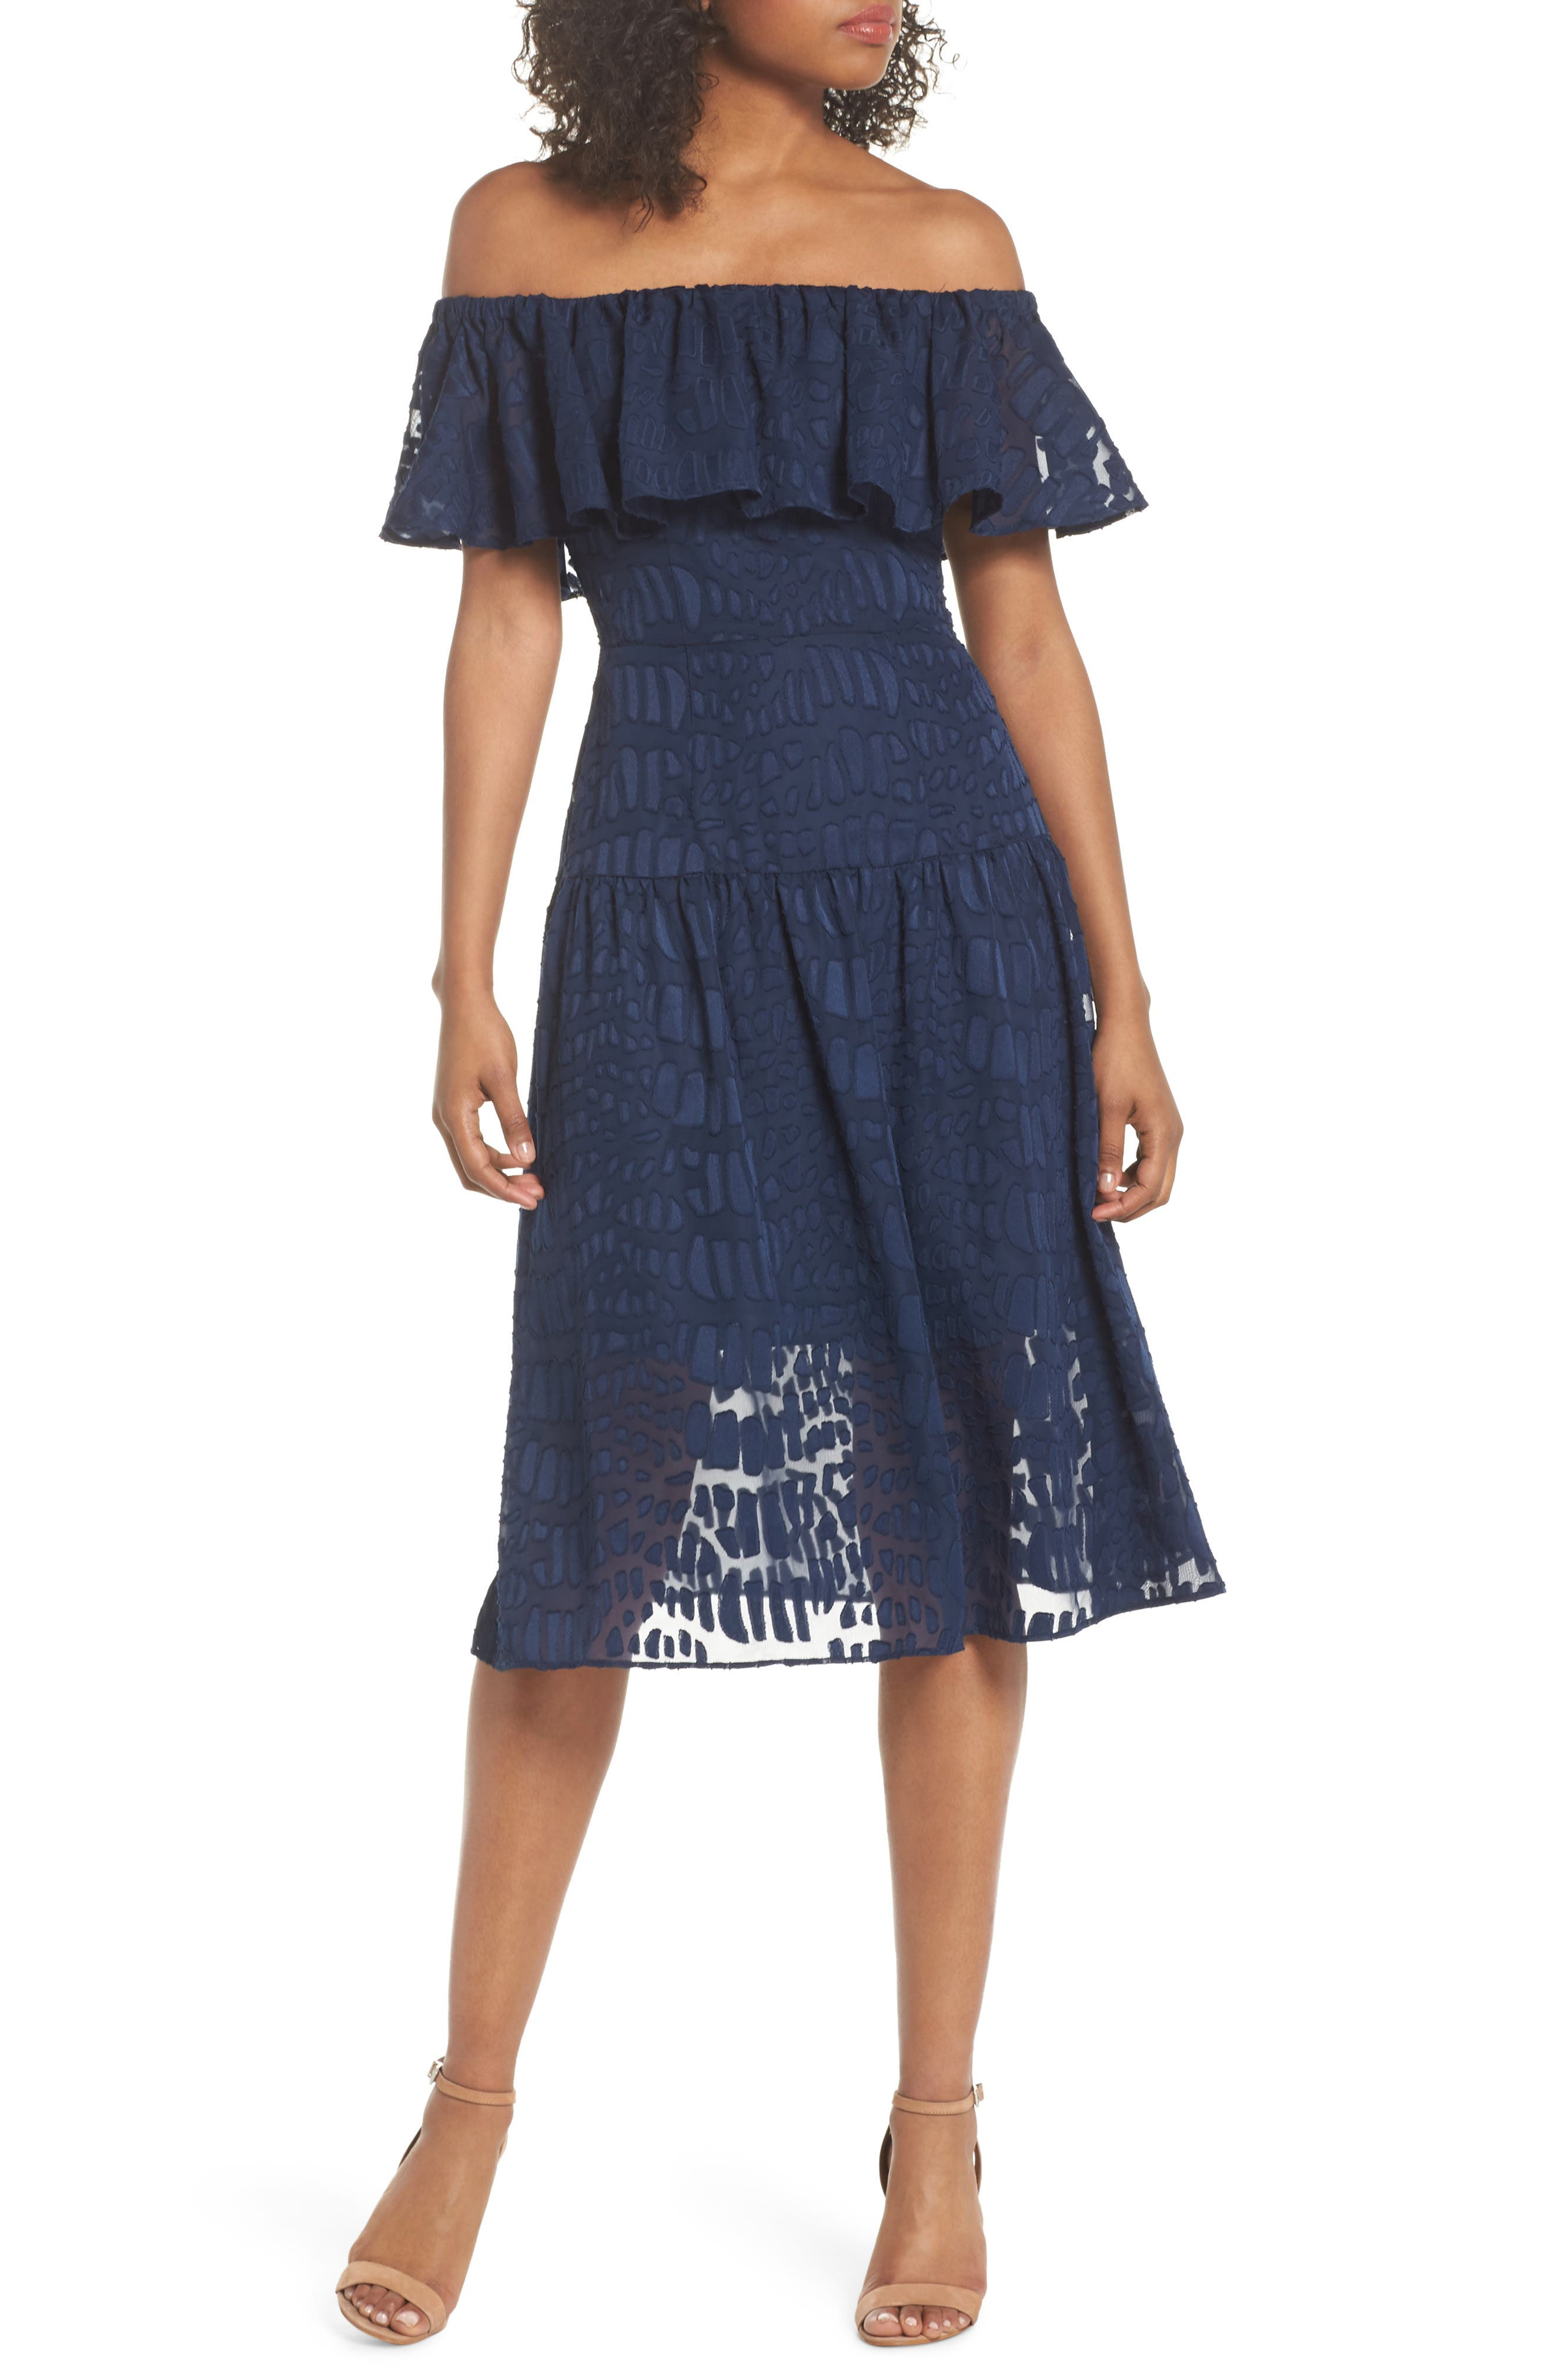 Cooper St Into the Pines Off the Shoulder Dress